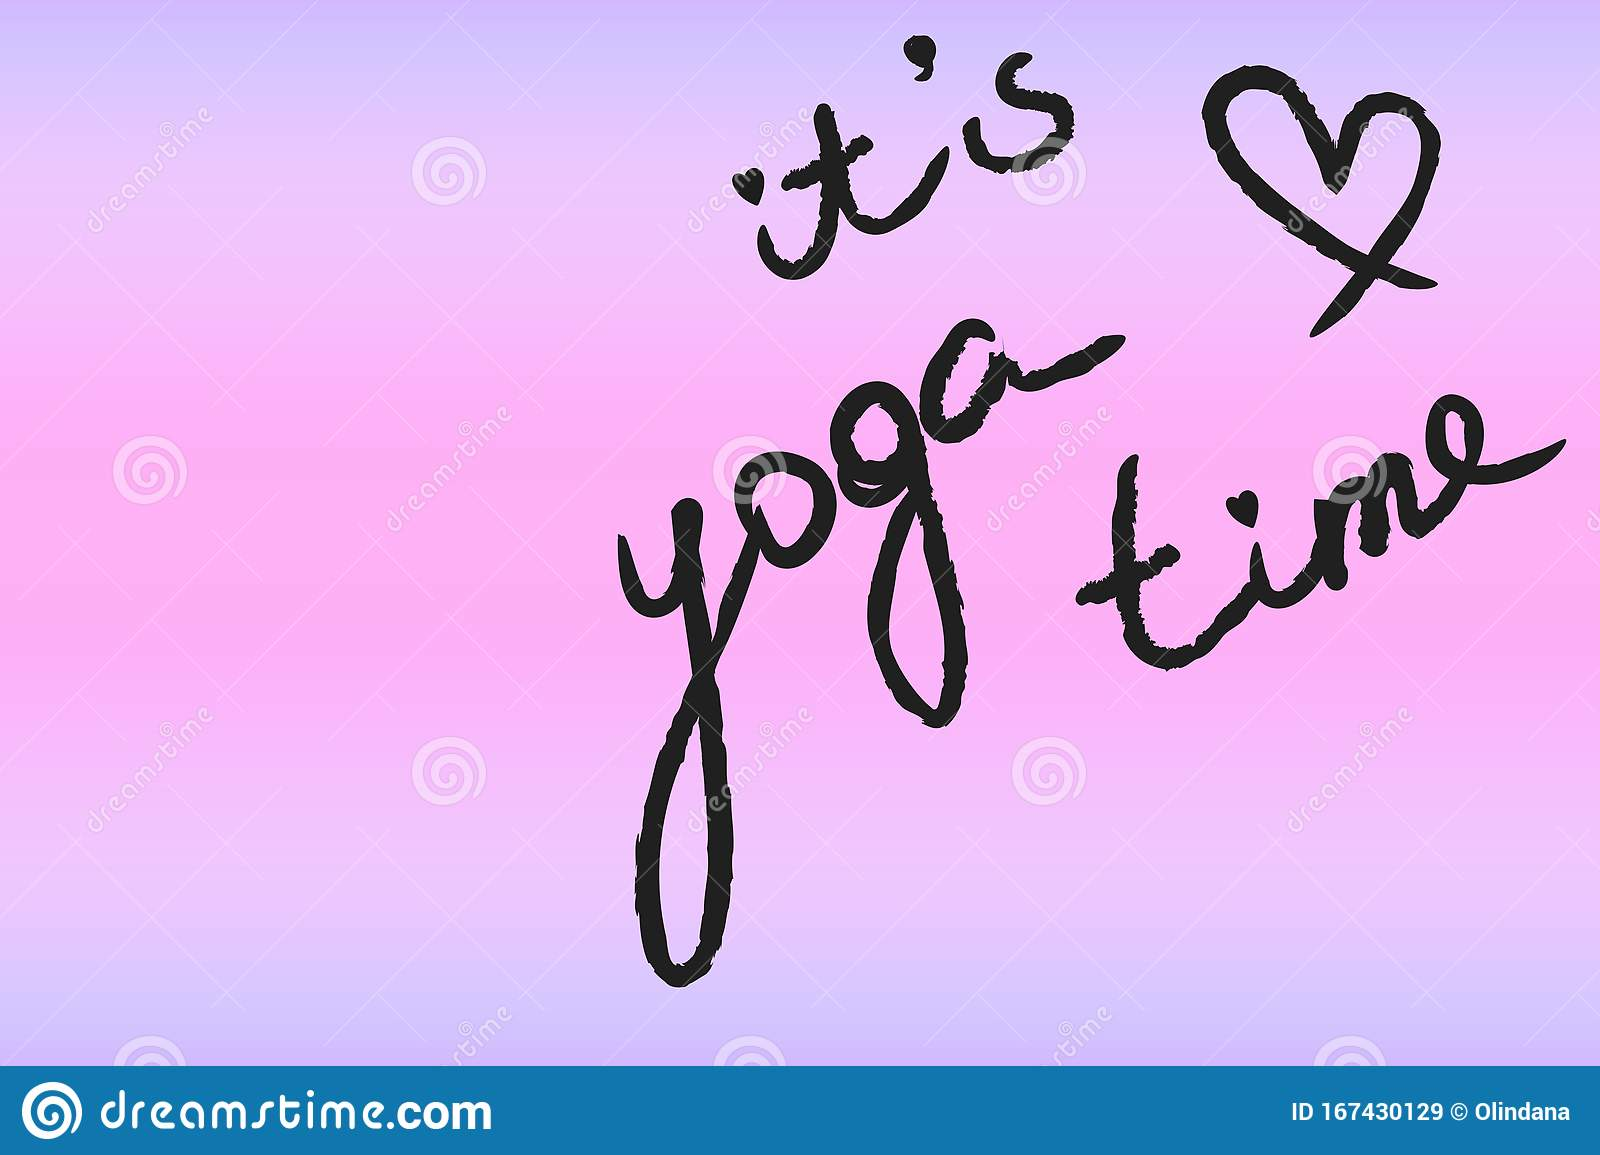 Abstract Multicolored Gradient Pastel Pink Blue Neon Background With Hand Written Calligraphic Lettering It S Yoga Time Stock Illustration Illustration Of Quote Inspirational 167430129 Weve gathered more than 3 million images uploaded by our users and neon blue light 3d architecture wallpaper for free download in different resolution hd widescreen 4k 5k 8k ultra hd wallpaper support different devices. https www dreamstime com abstract multicolored gradient pastel pink blue neon background hand written calligraphic lettering s yoga time doodle image167430129